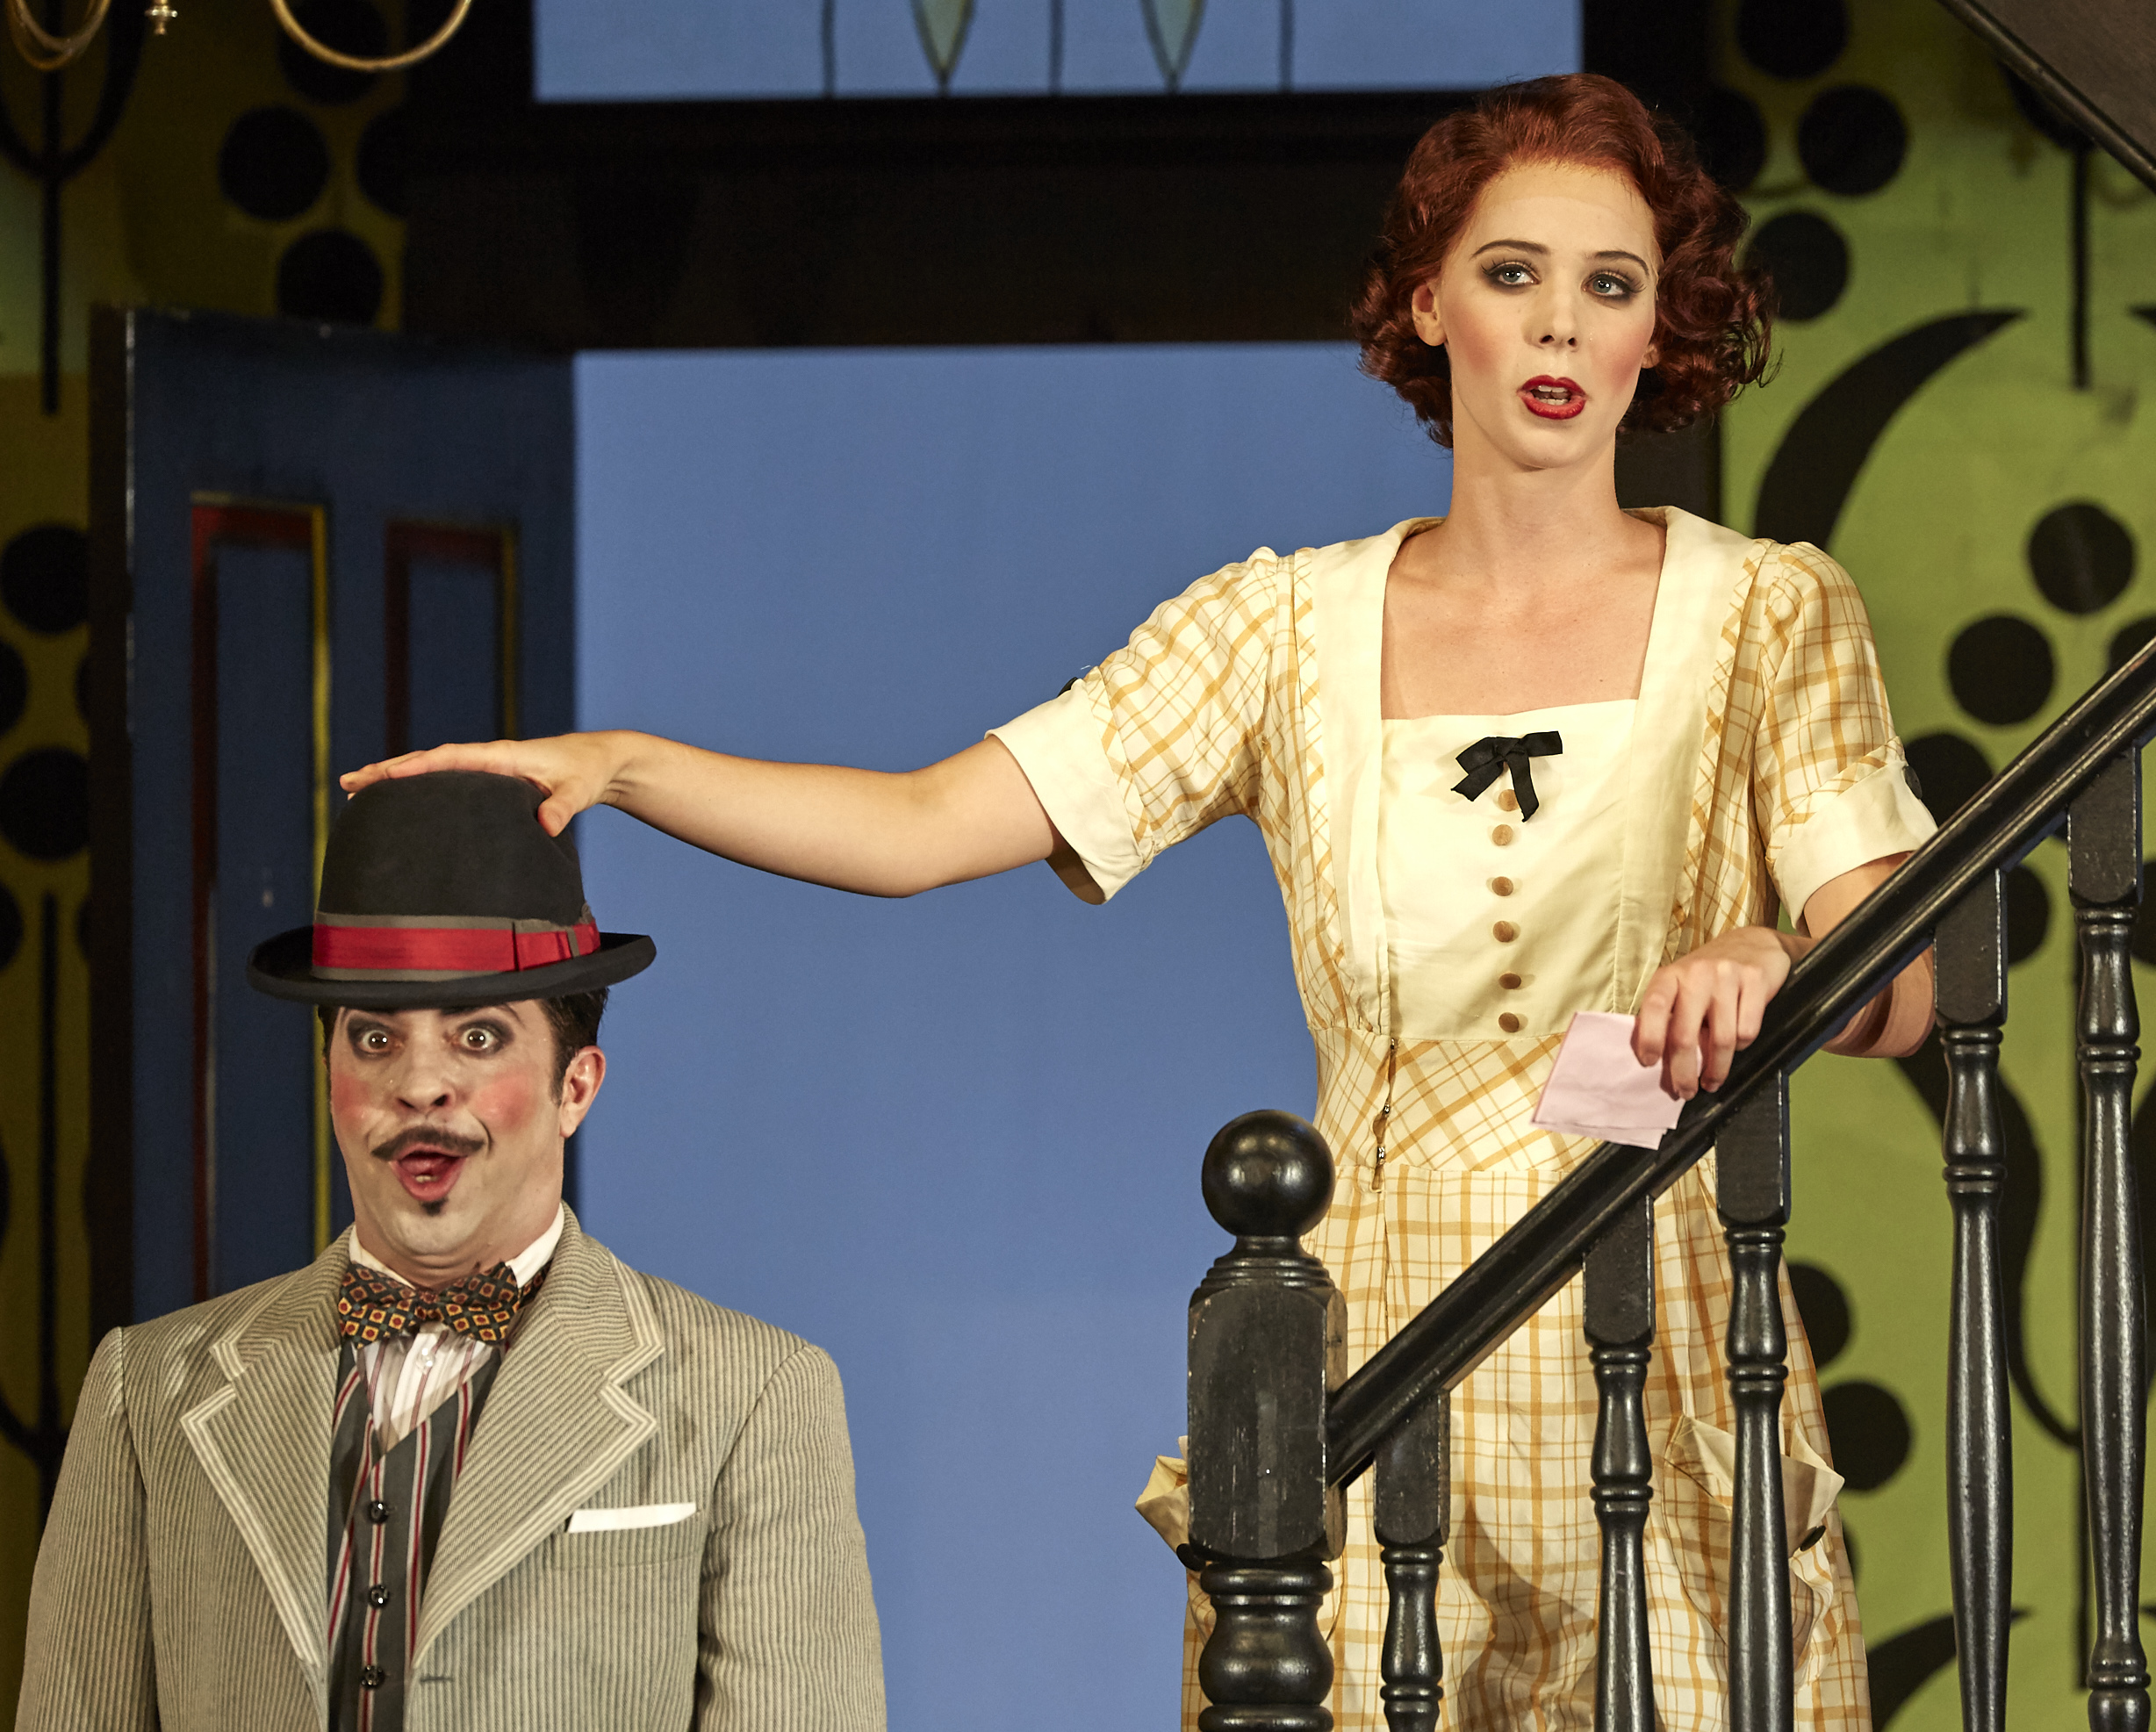 Barber Of Seville Summary : Review: The Barber of Seville Altmedia